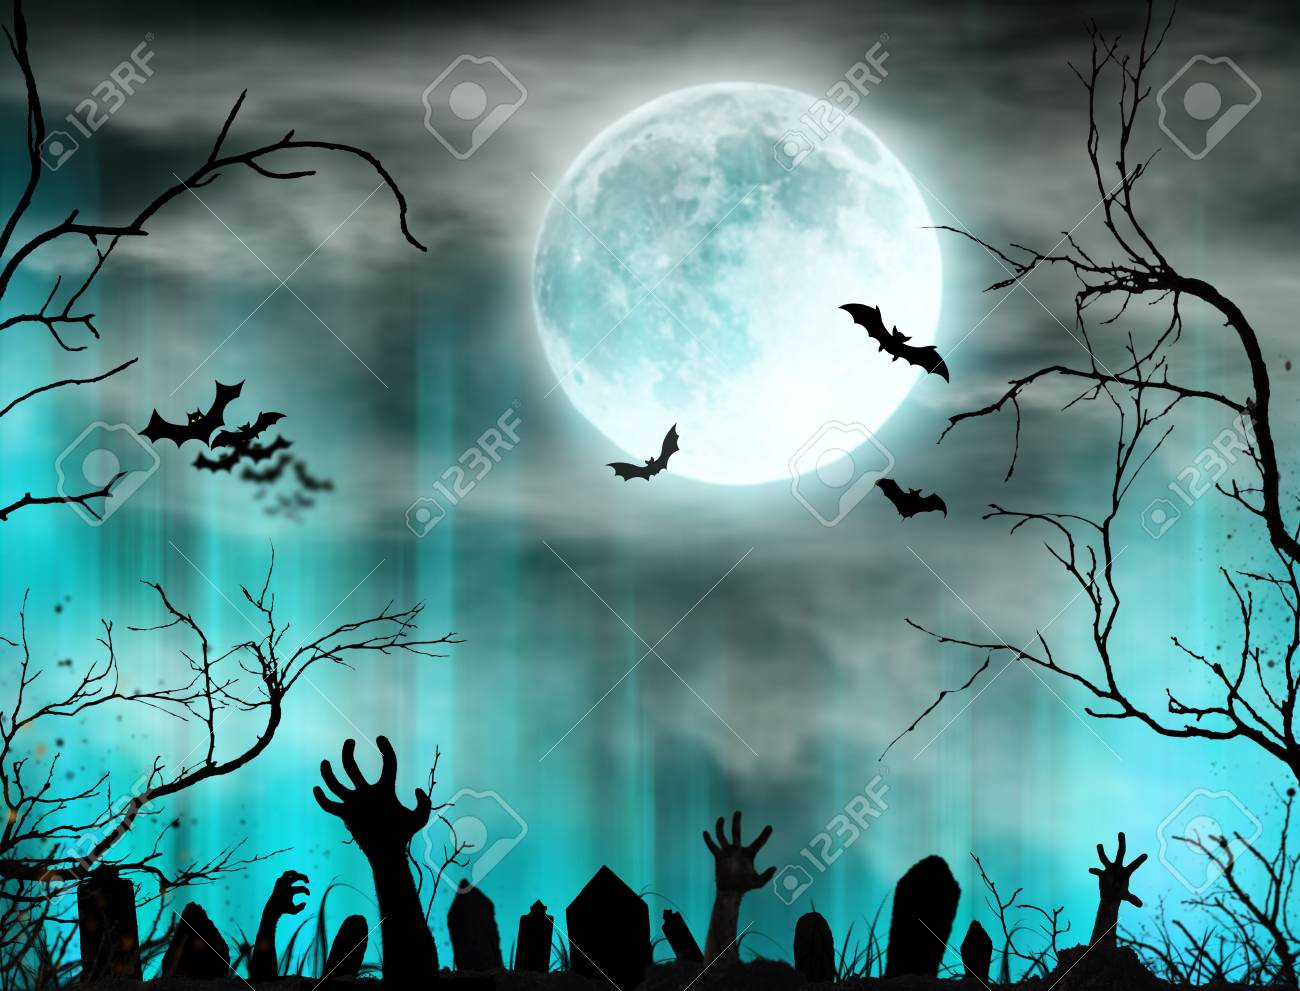 1300x991 - Scary Halloween Background 7